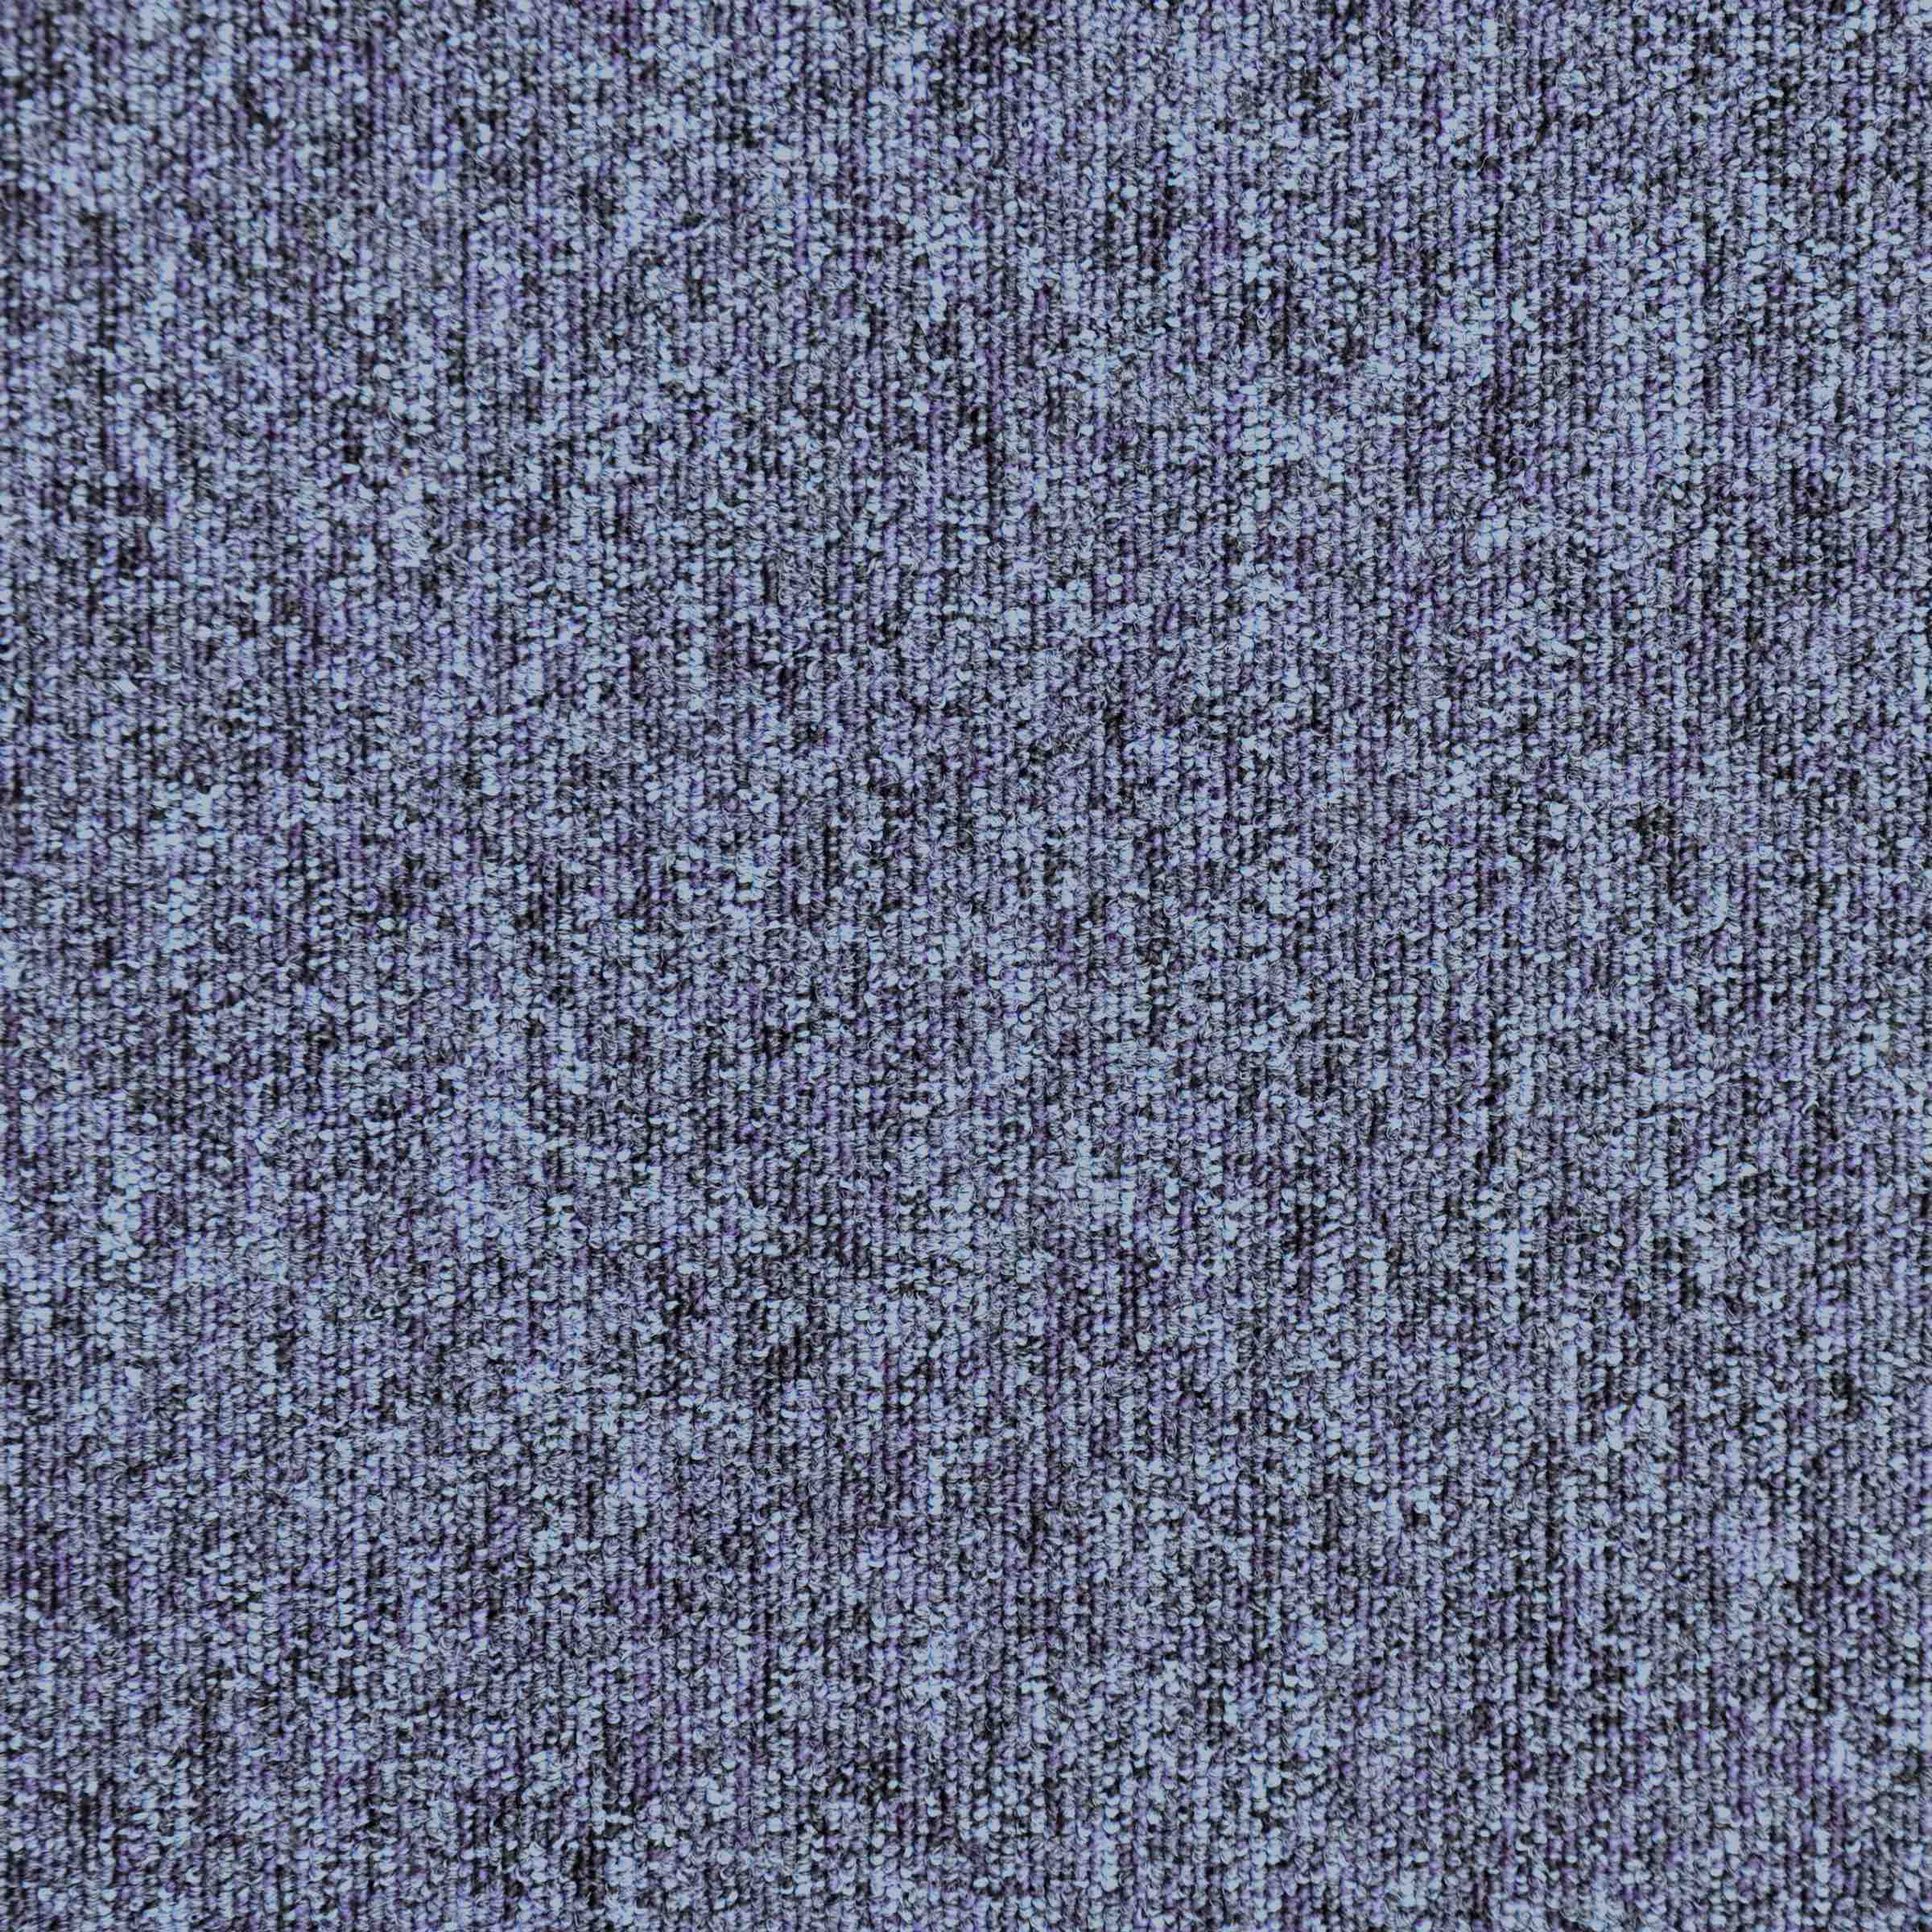 Vital | 6011 | Paragon Carpet Tiles | Commercial Carpet Tiles